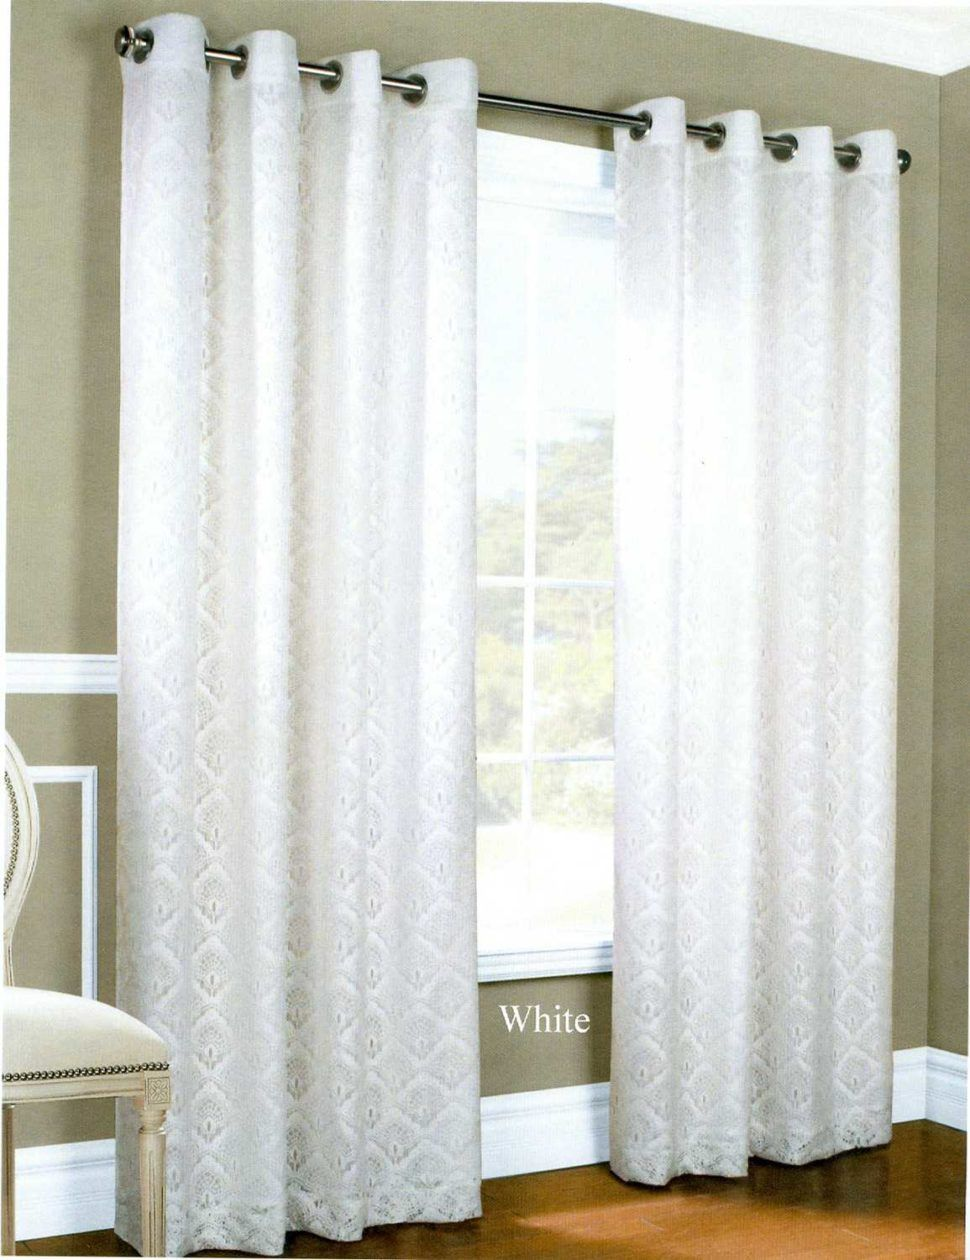 Target Curtain Panels Yellow Curtains Target Curtains Grommet Curtains Window